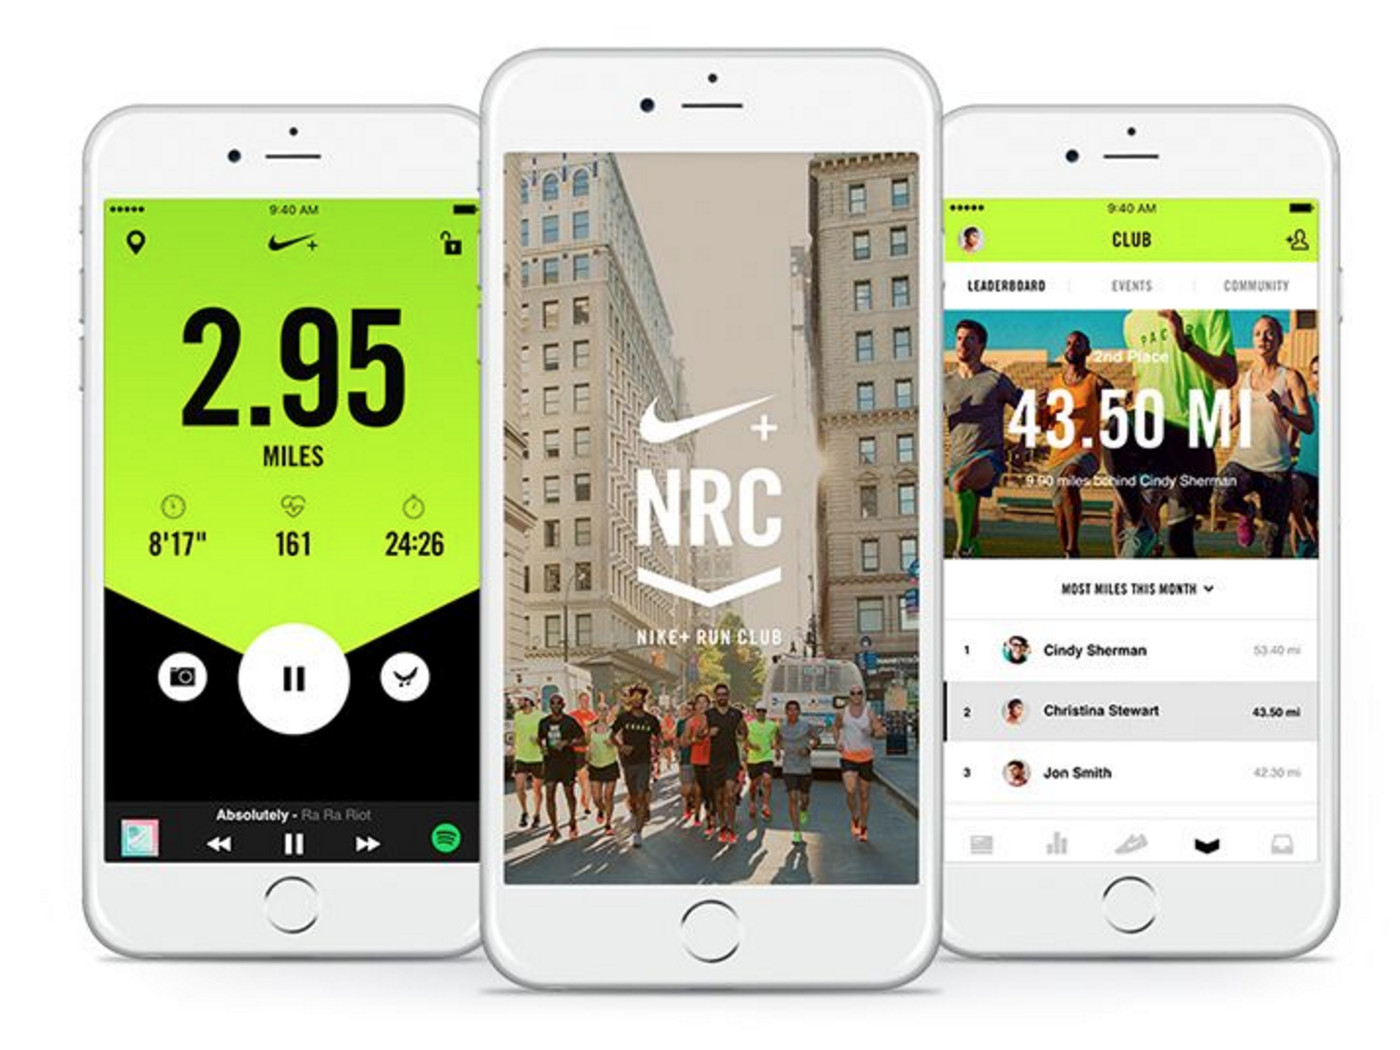 Celo Lógico China  Nike redesigned its popular running app, and users are very angry - The  Verge